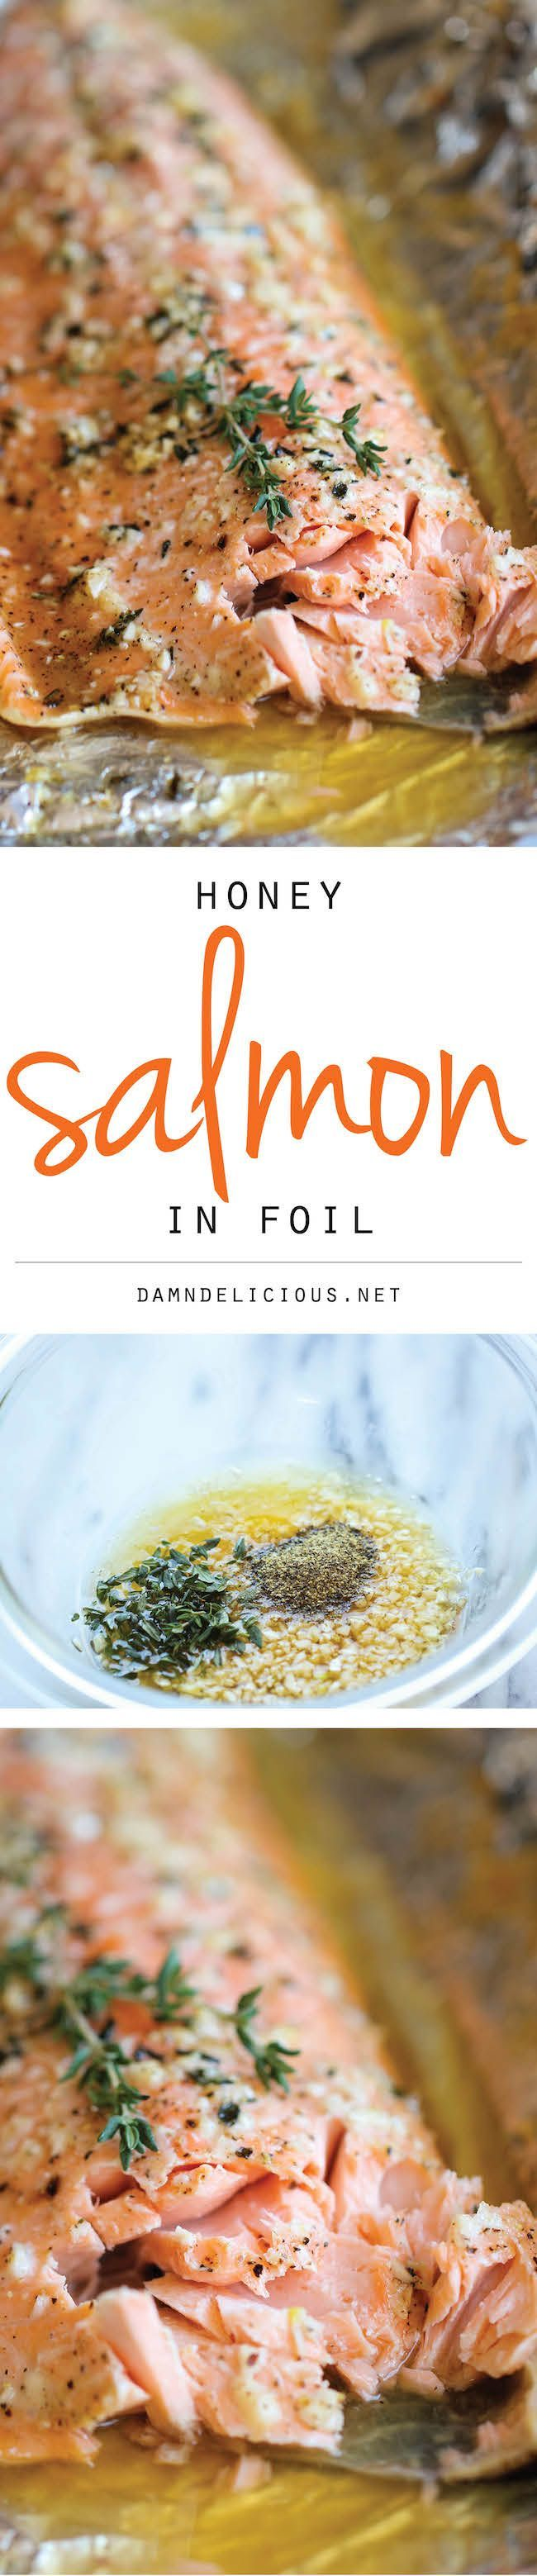 Here is a no fuss Honey Salmon in Foil recipe which is great for a quick snack or dinner meal.